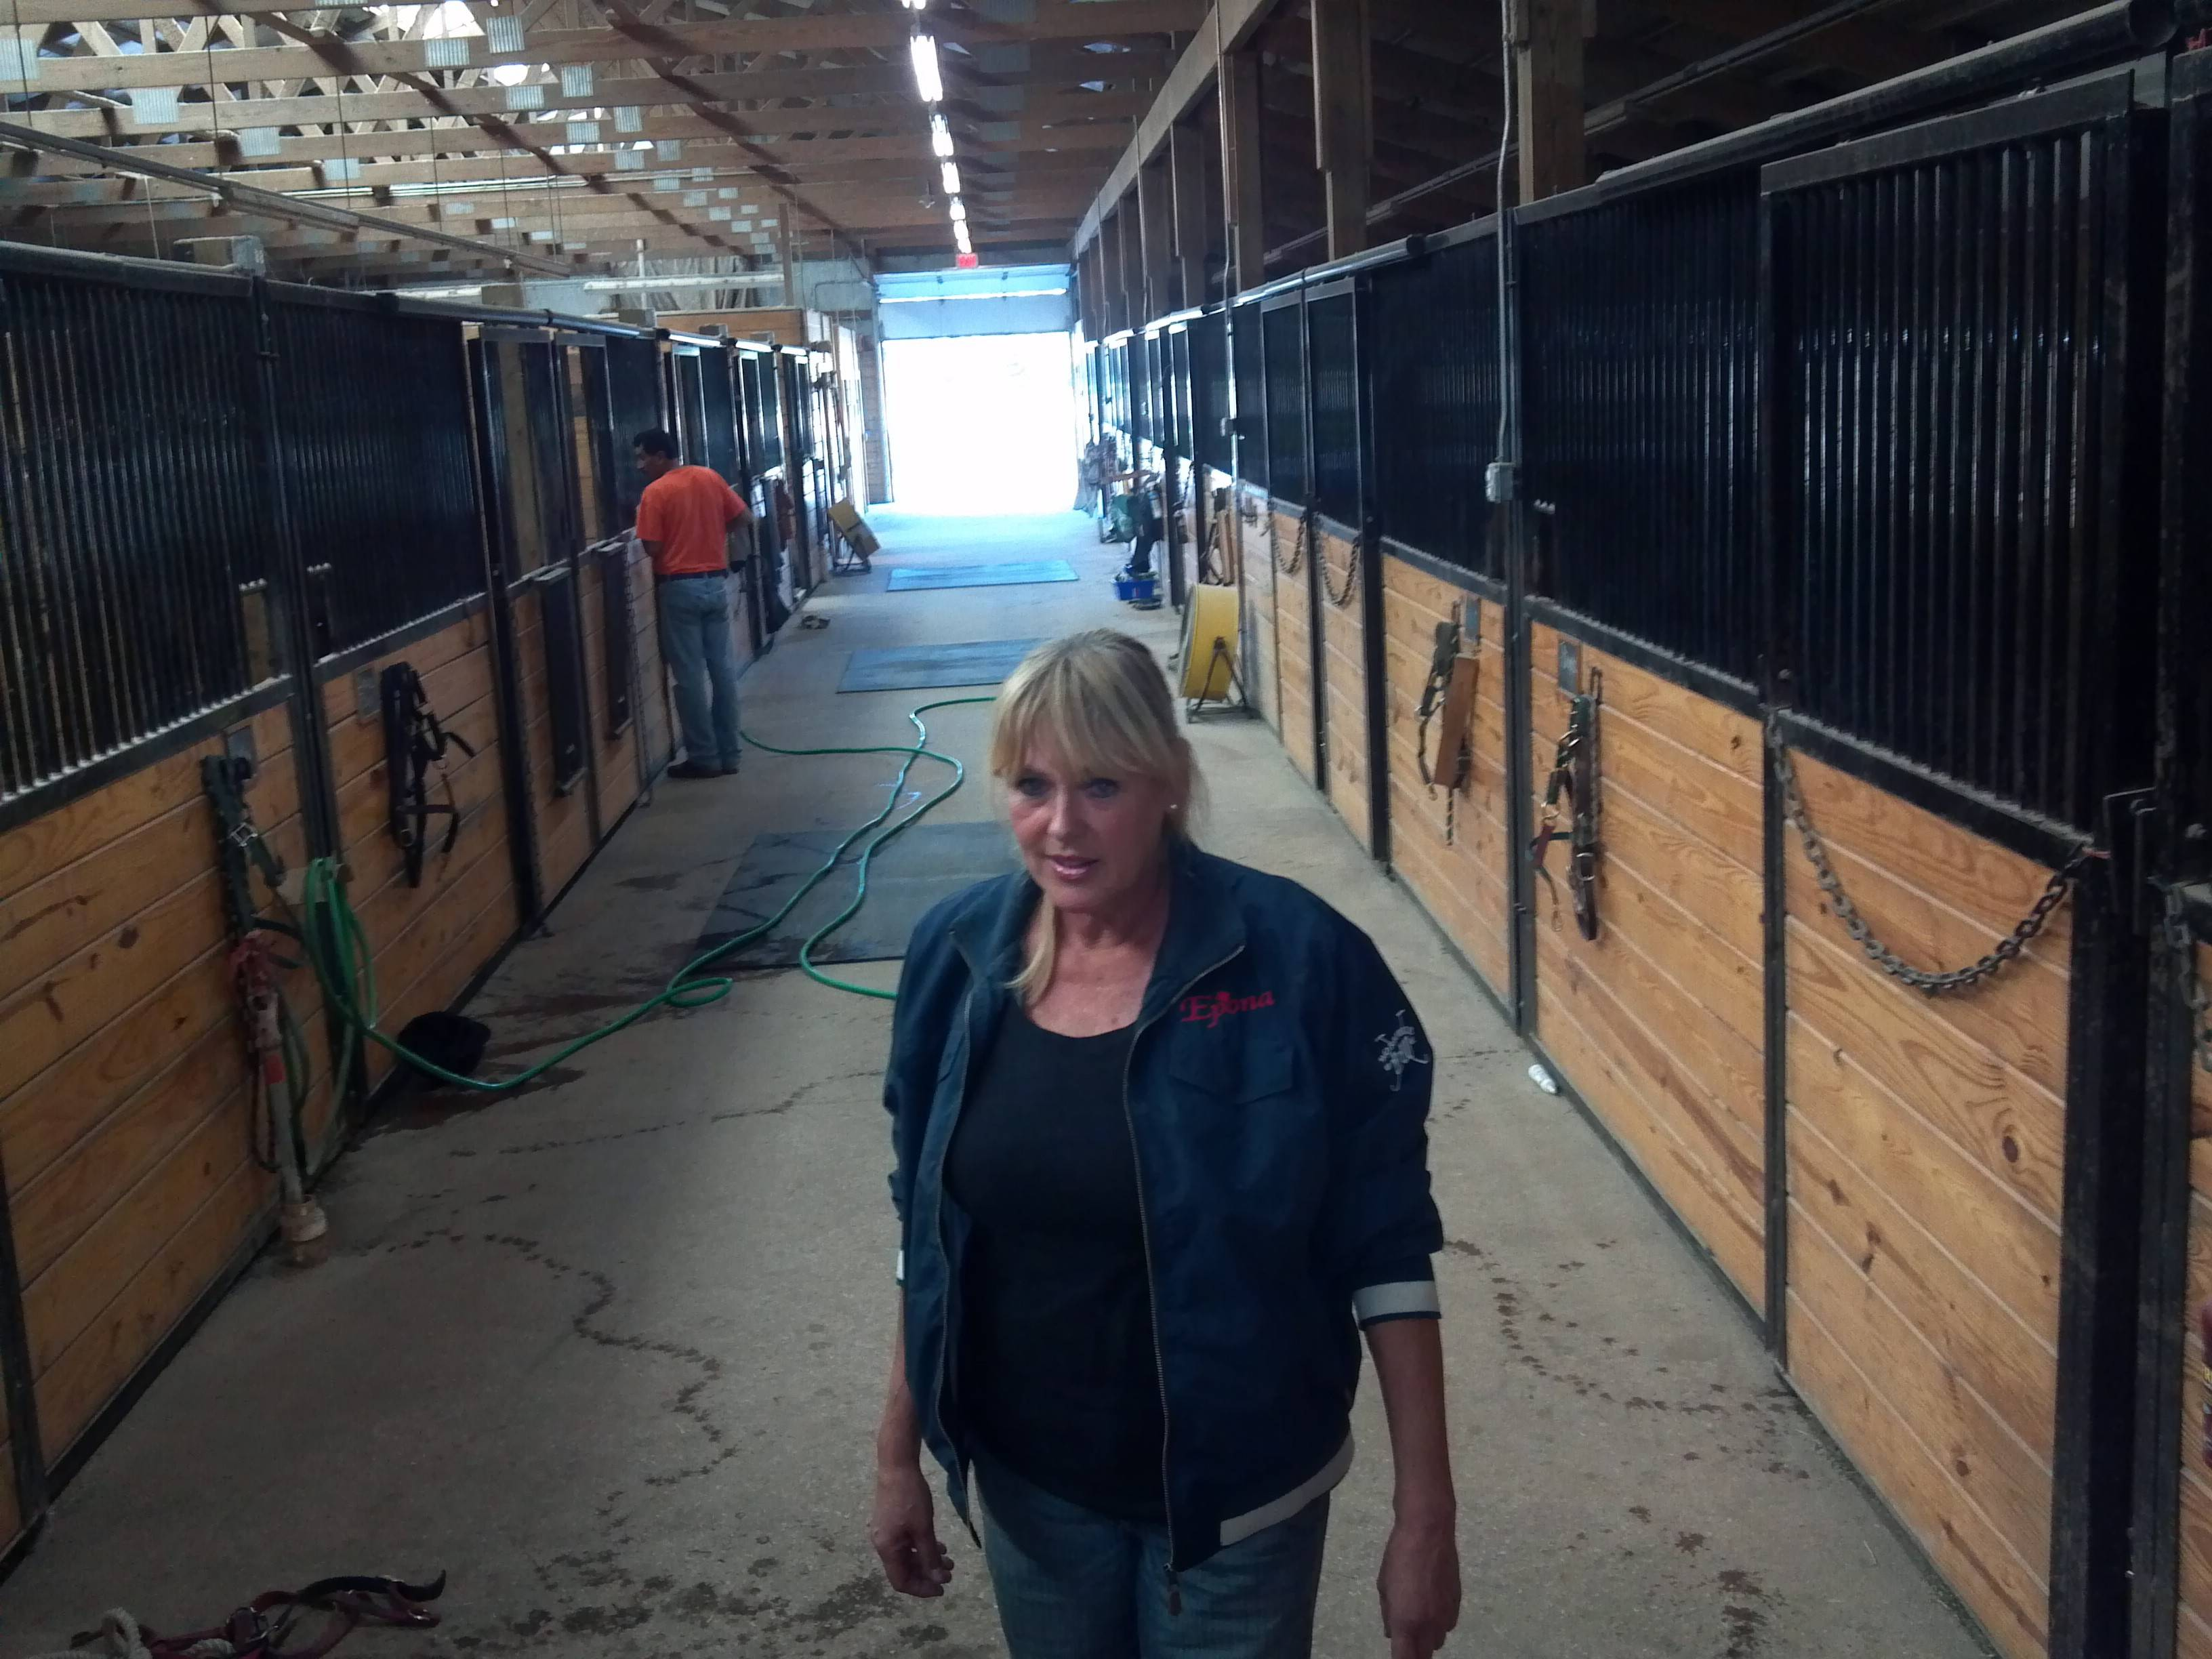 Dora Christensen, owner of Epona Dressage, a Maple Park horse farm, has dropped her lawsuit against her neighbor, according to court records.